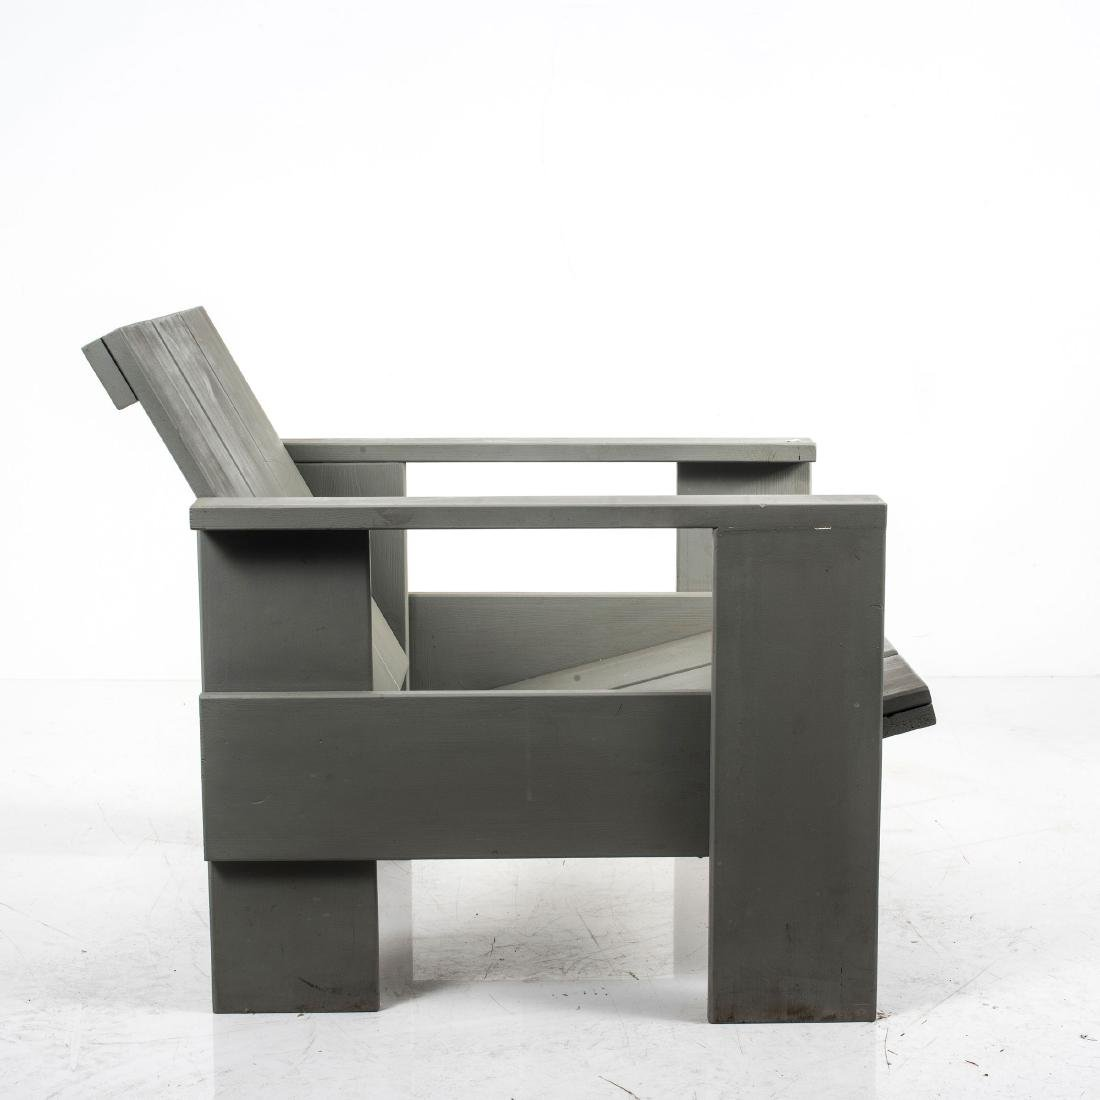 'Crate chair', 1934 - 4